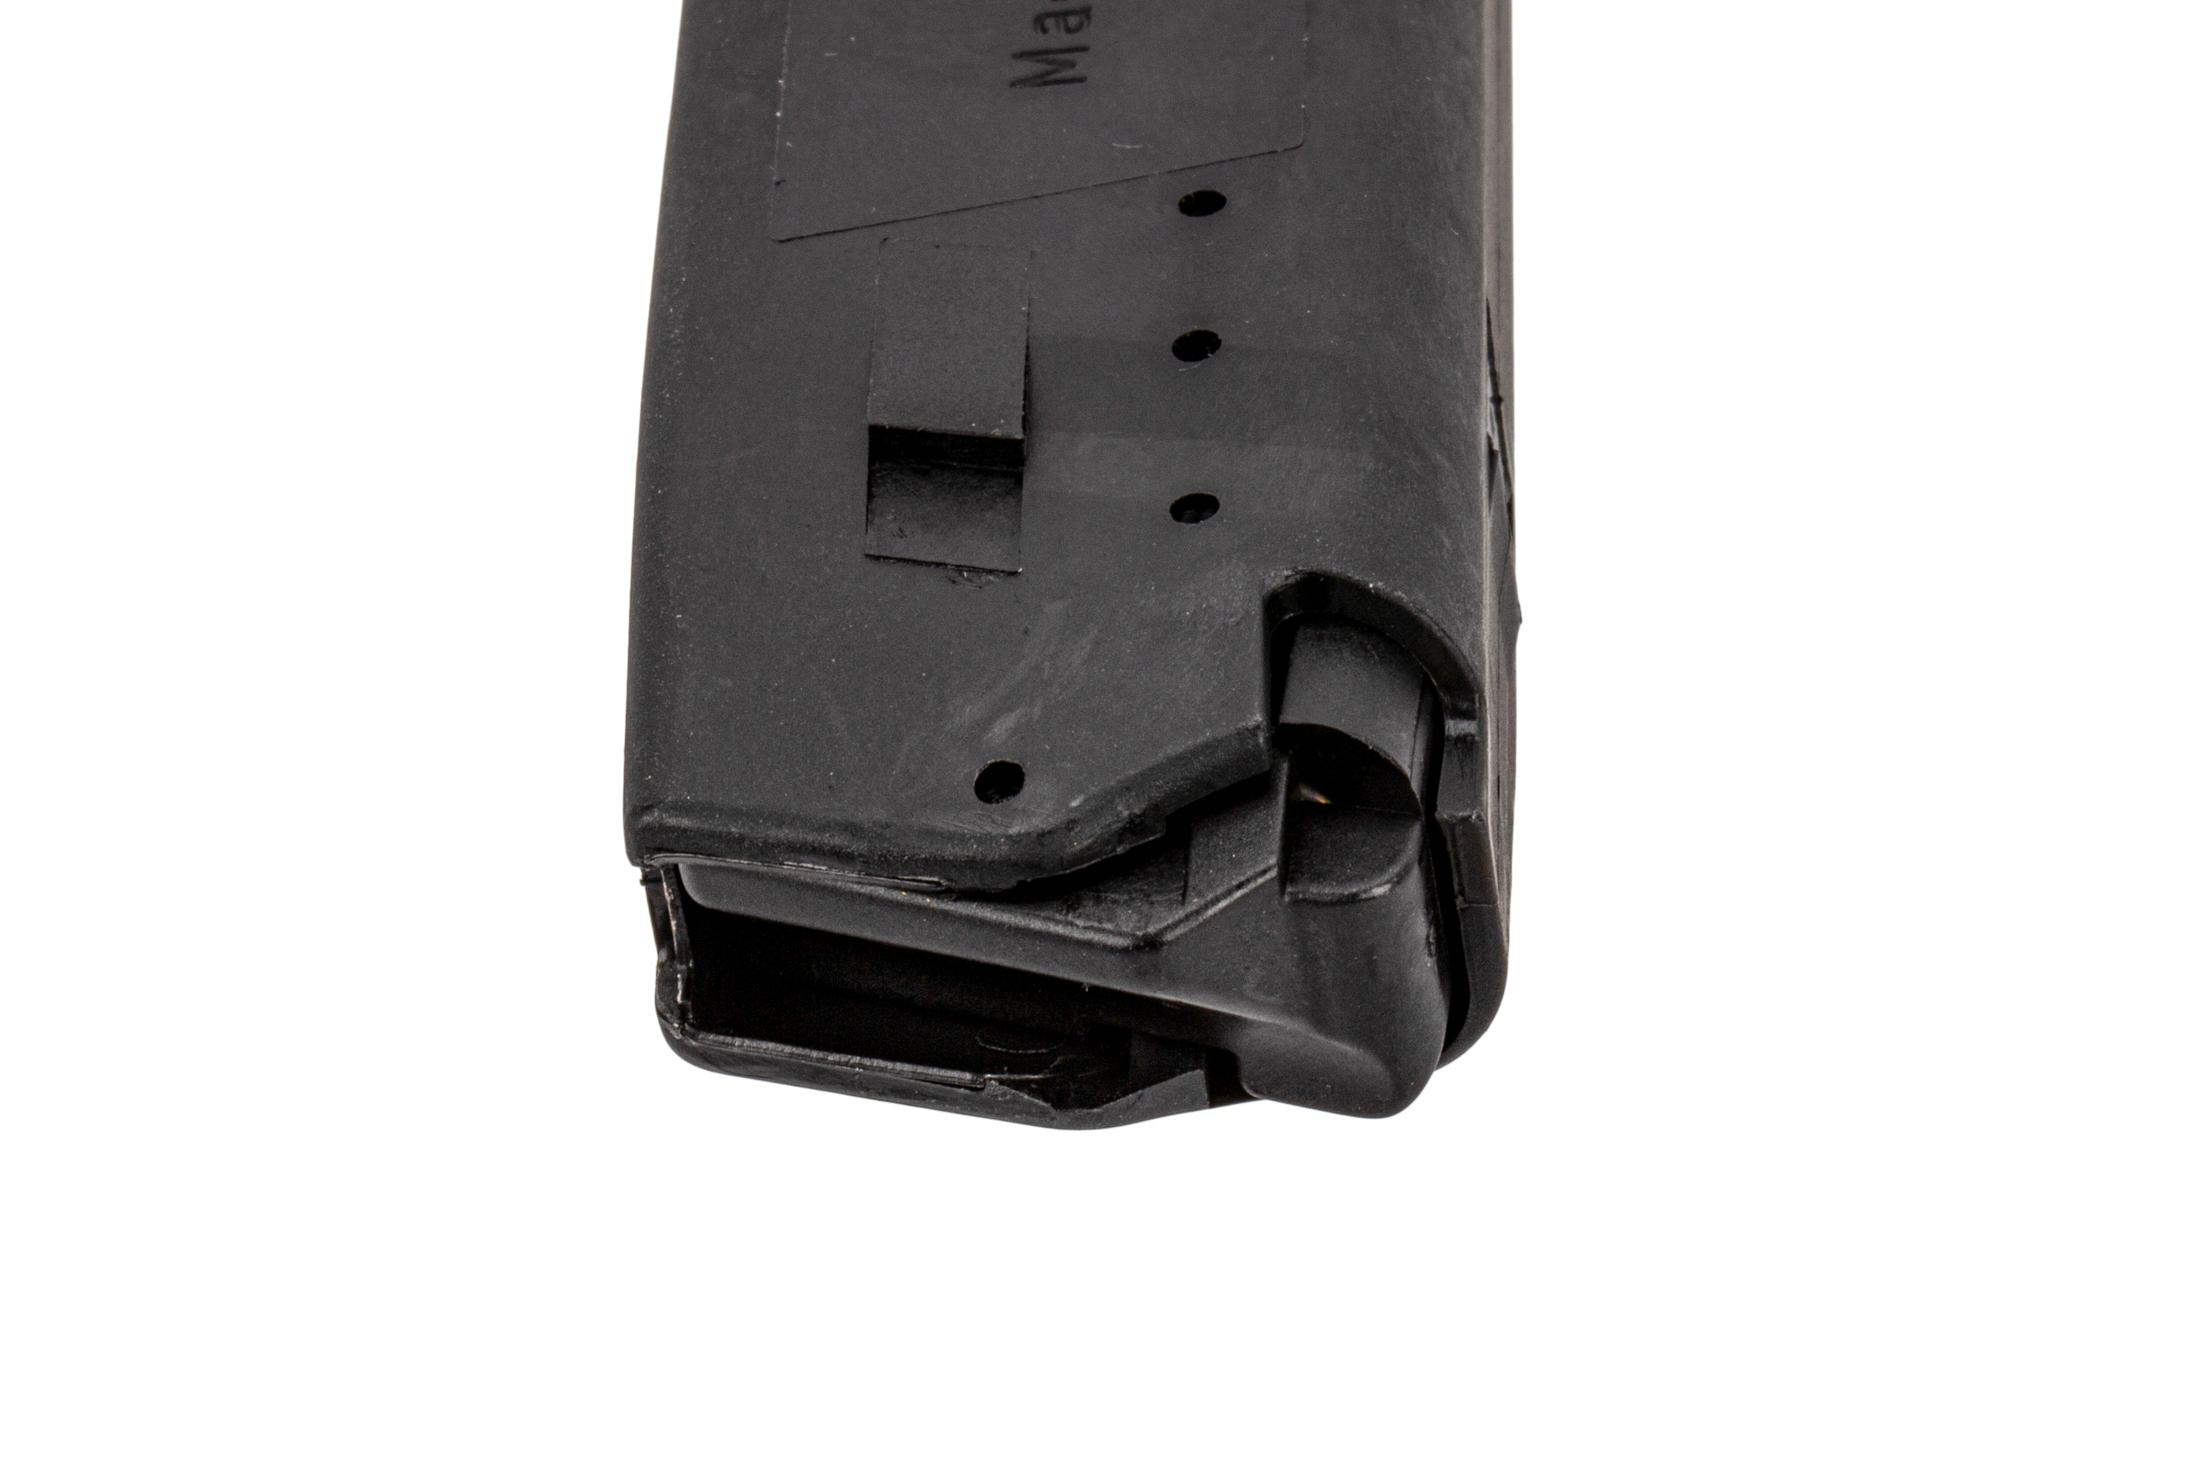 The H&K USP 9mm 15 round Magazine features an easily removable polymer base plate